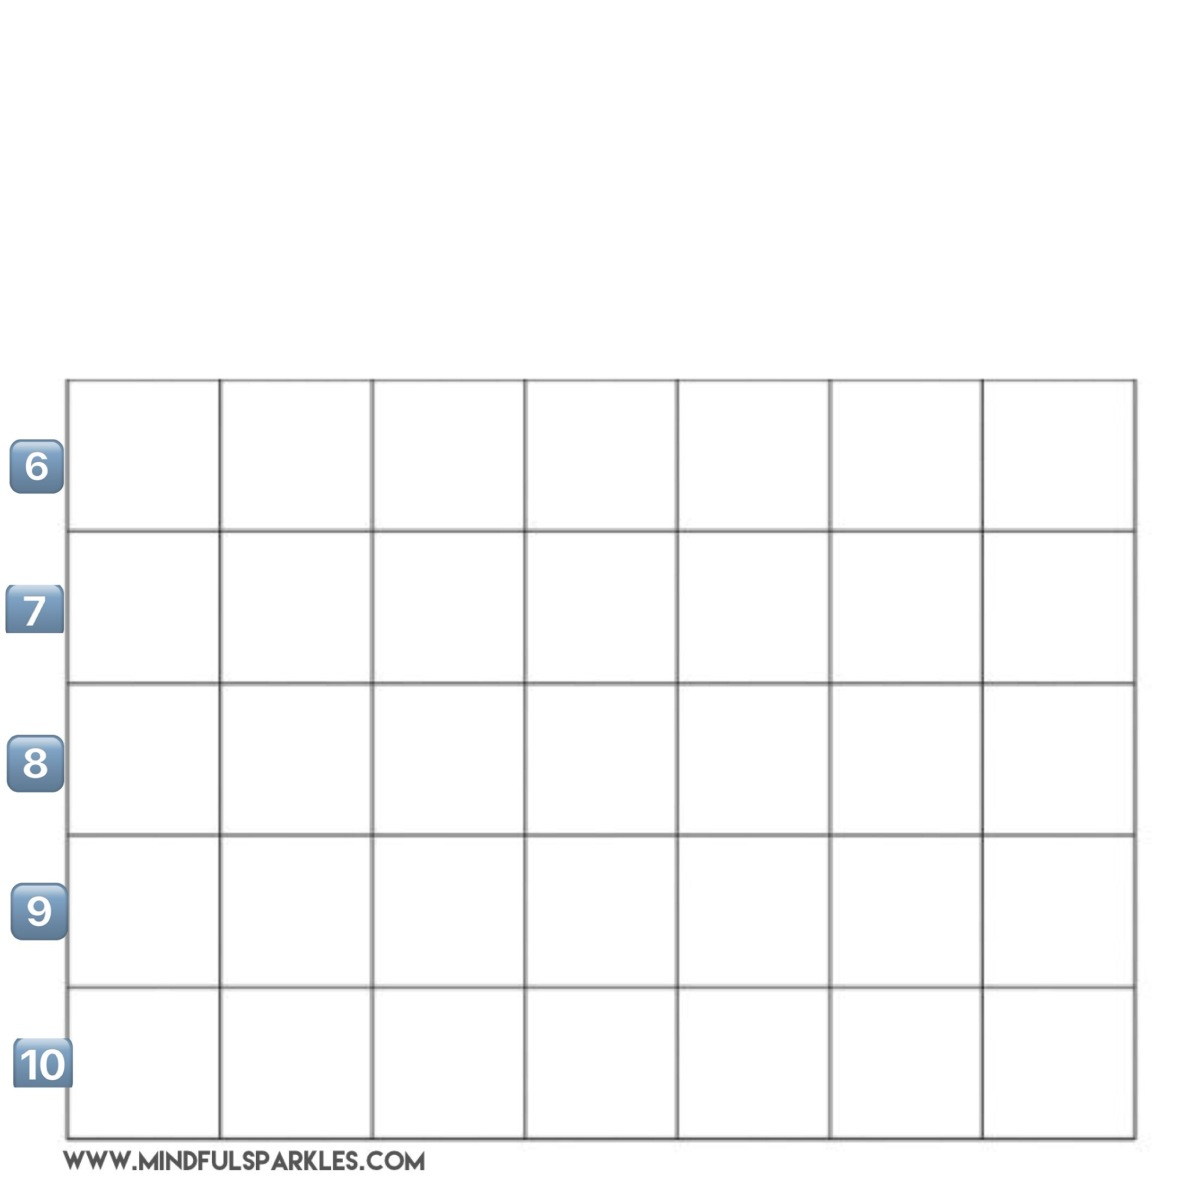 Blank Grid Numbered 6-10